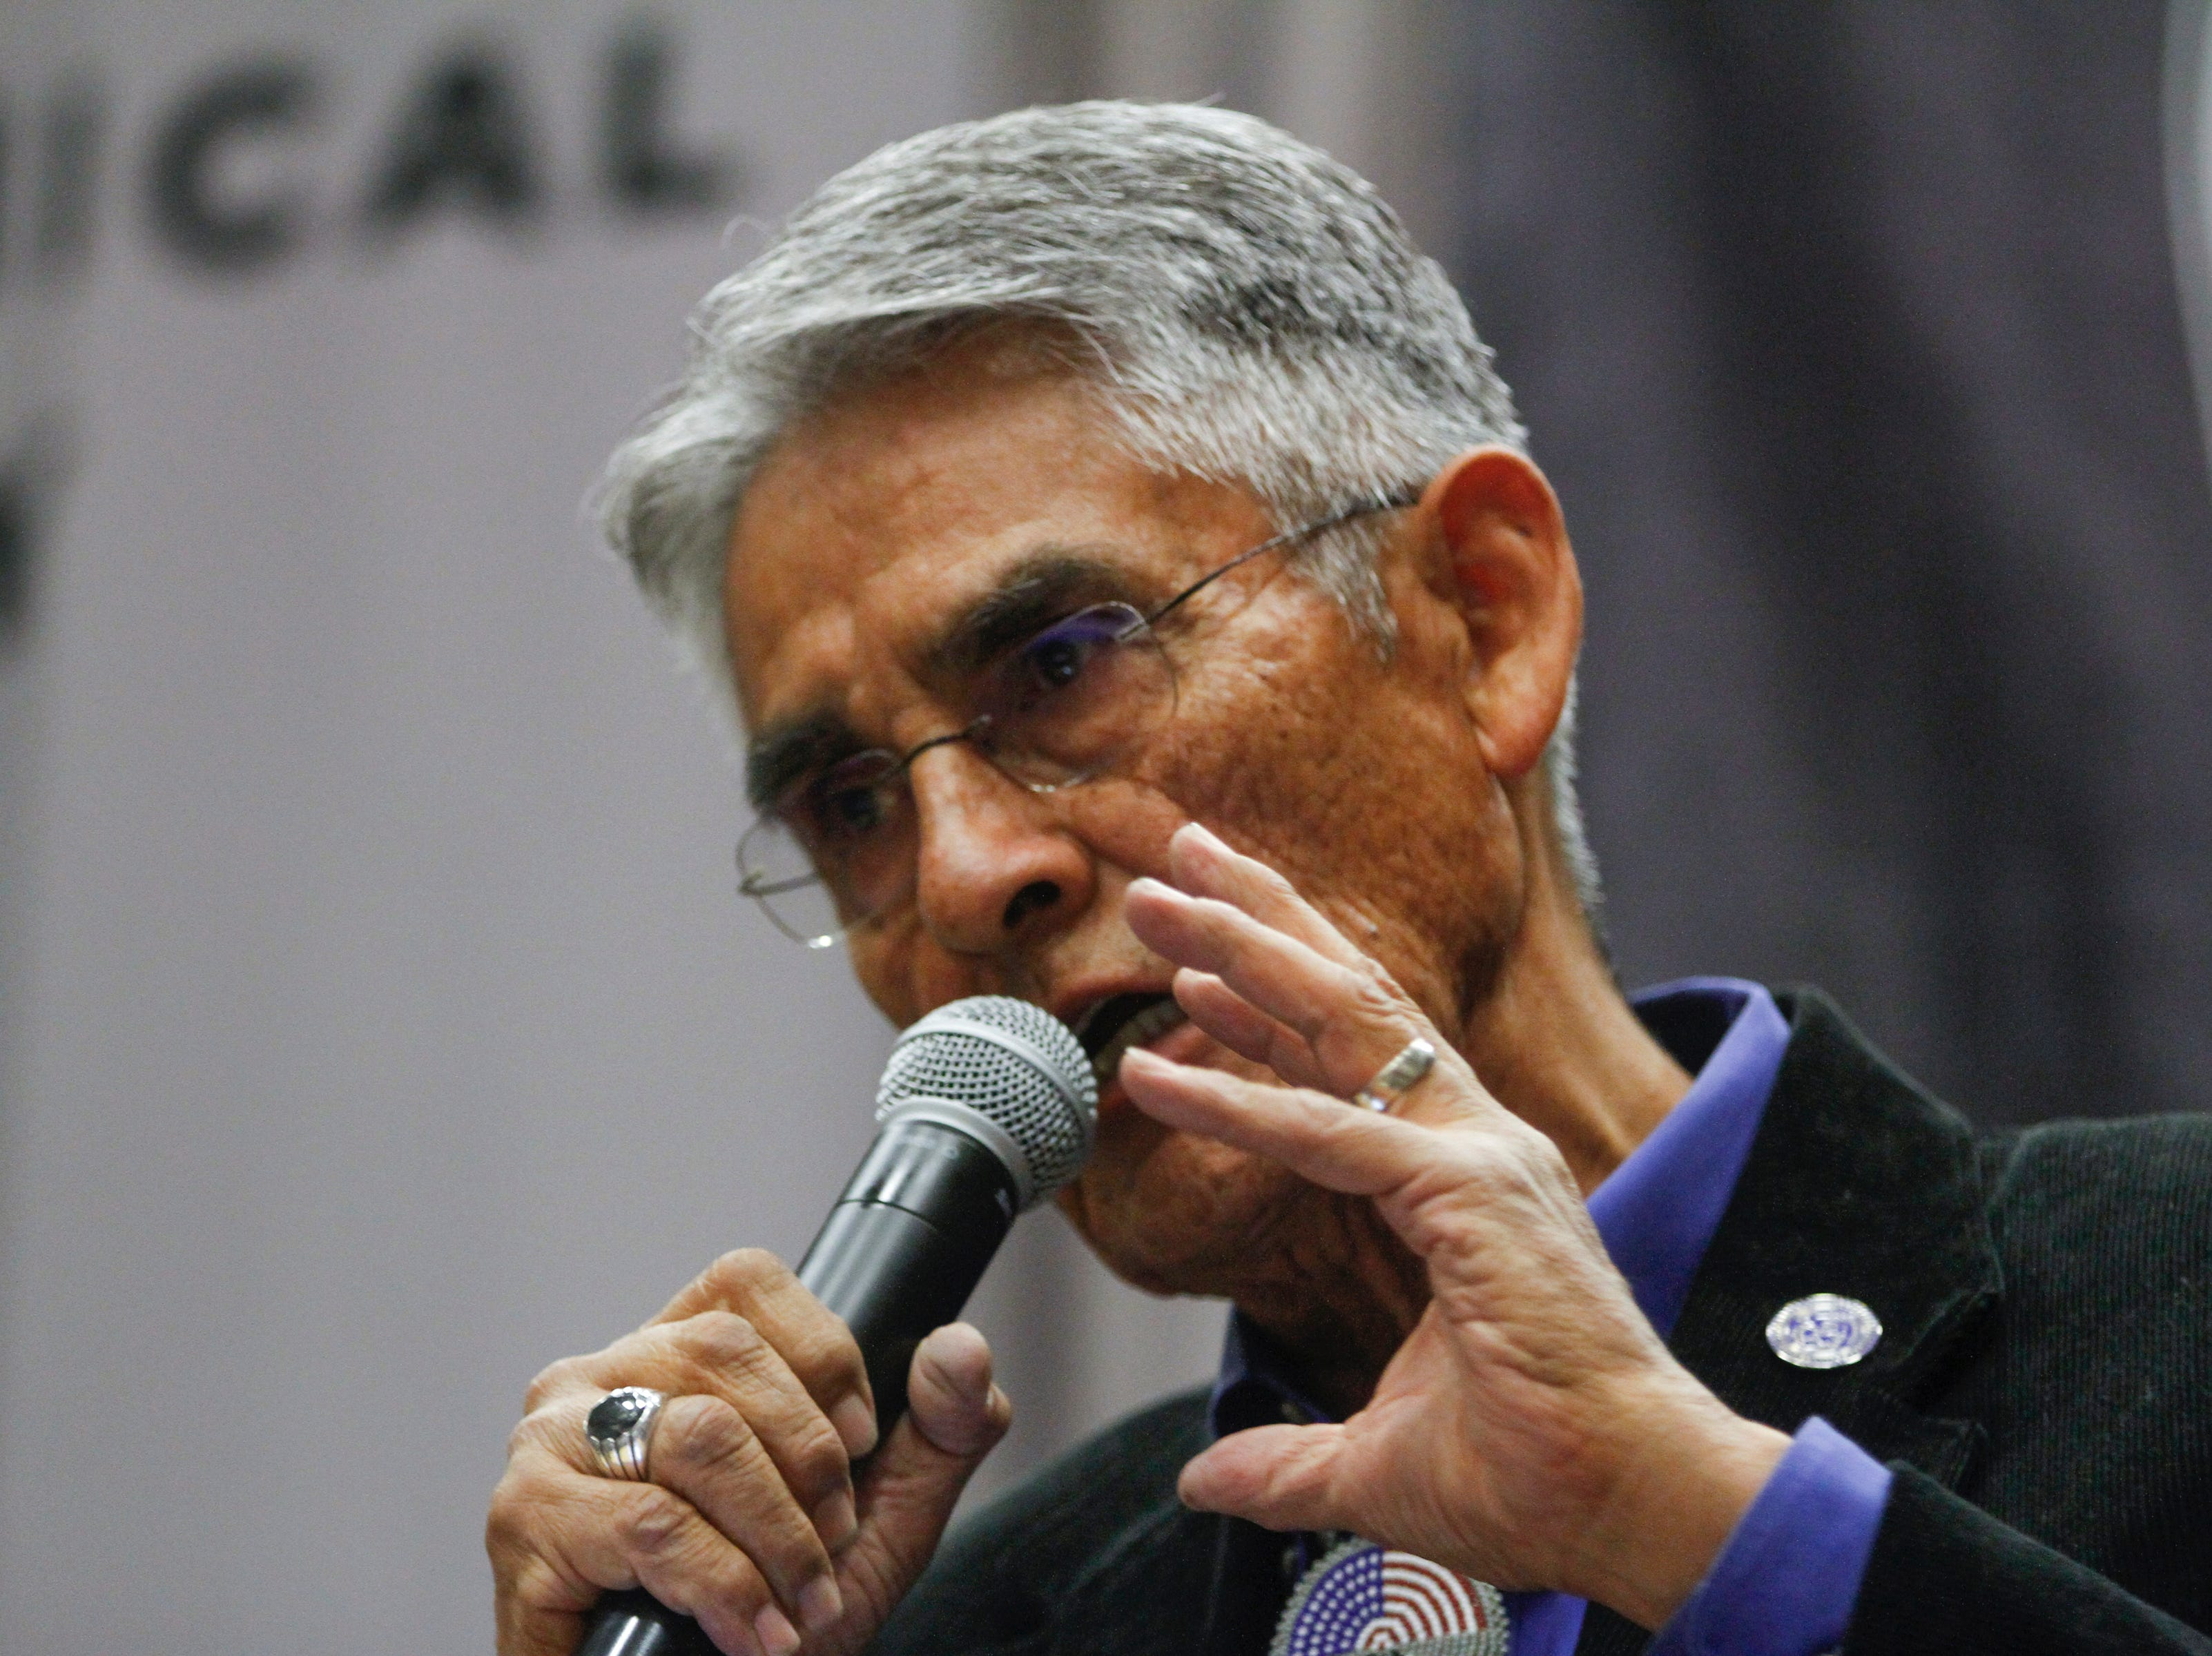 Navajo Nation Presidential candidate Joe Shirley Jr., gives his closing remarks, Tuesday, Oct. 16, 2018 at the conclusion of the 2018 Navajo Nation Presidential Debate held at Navajo Technical University's  Wellness Center in Crownpoint.